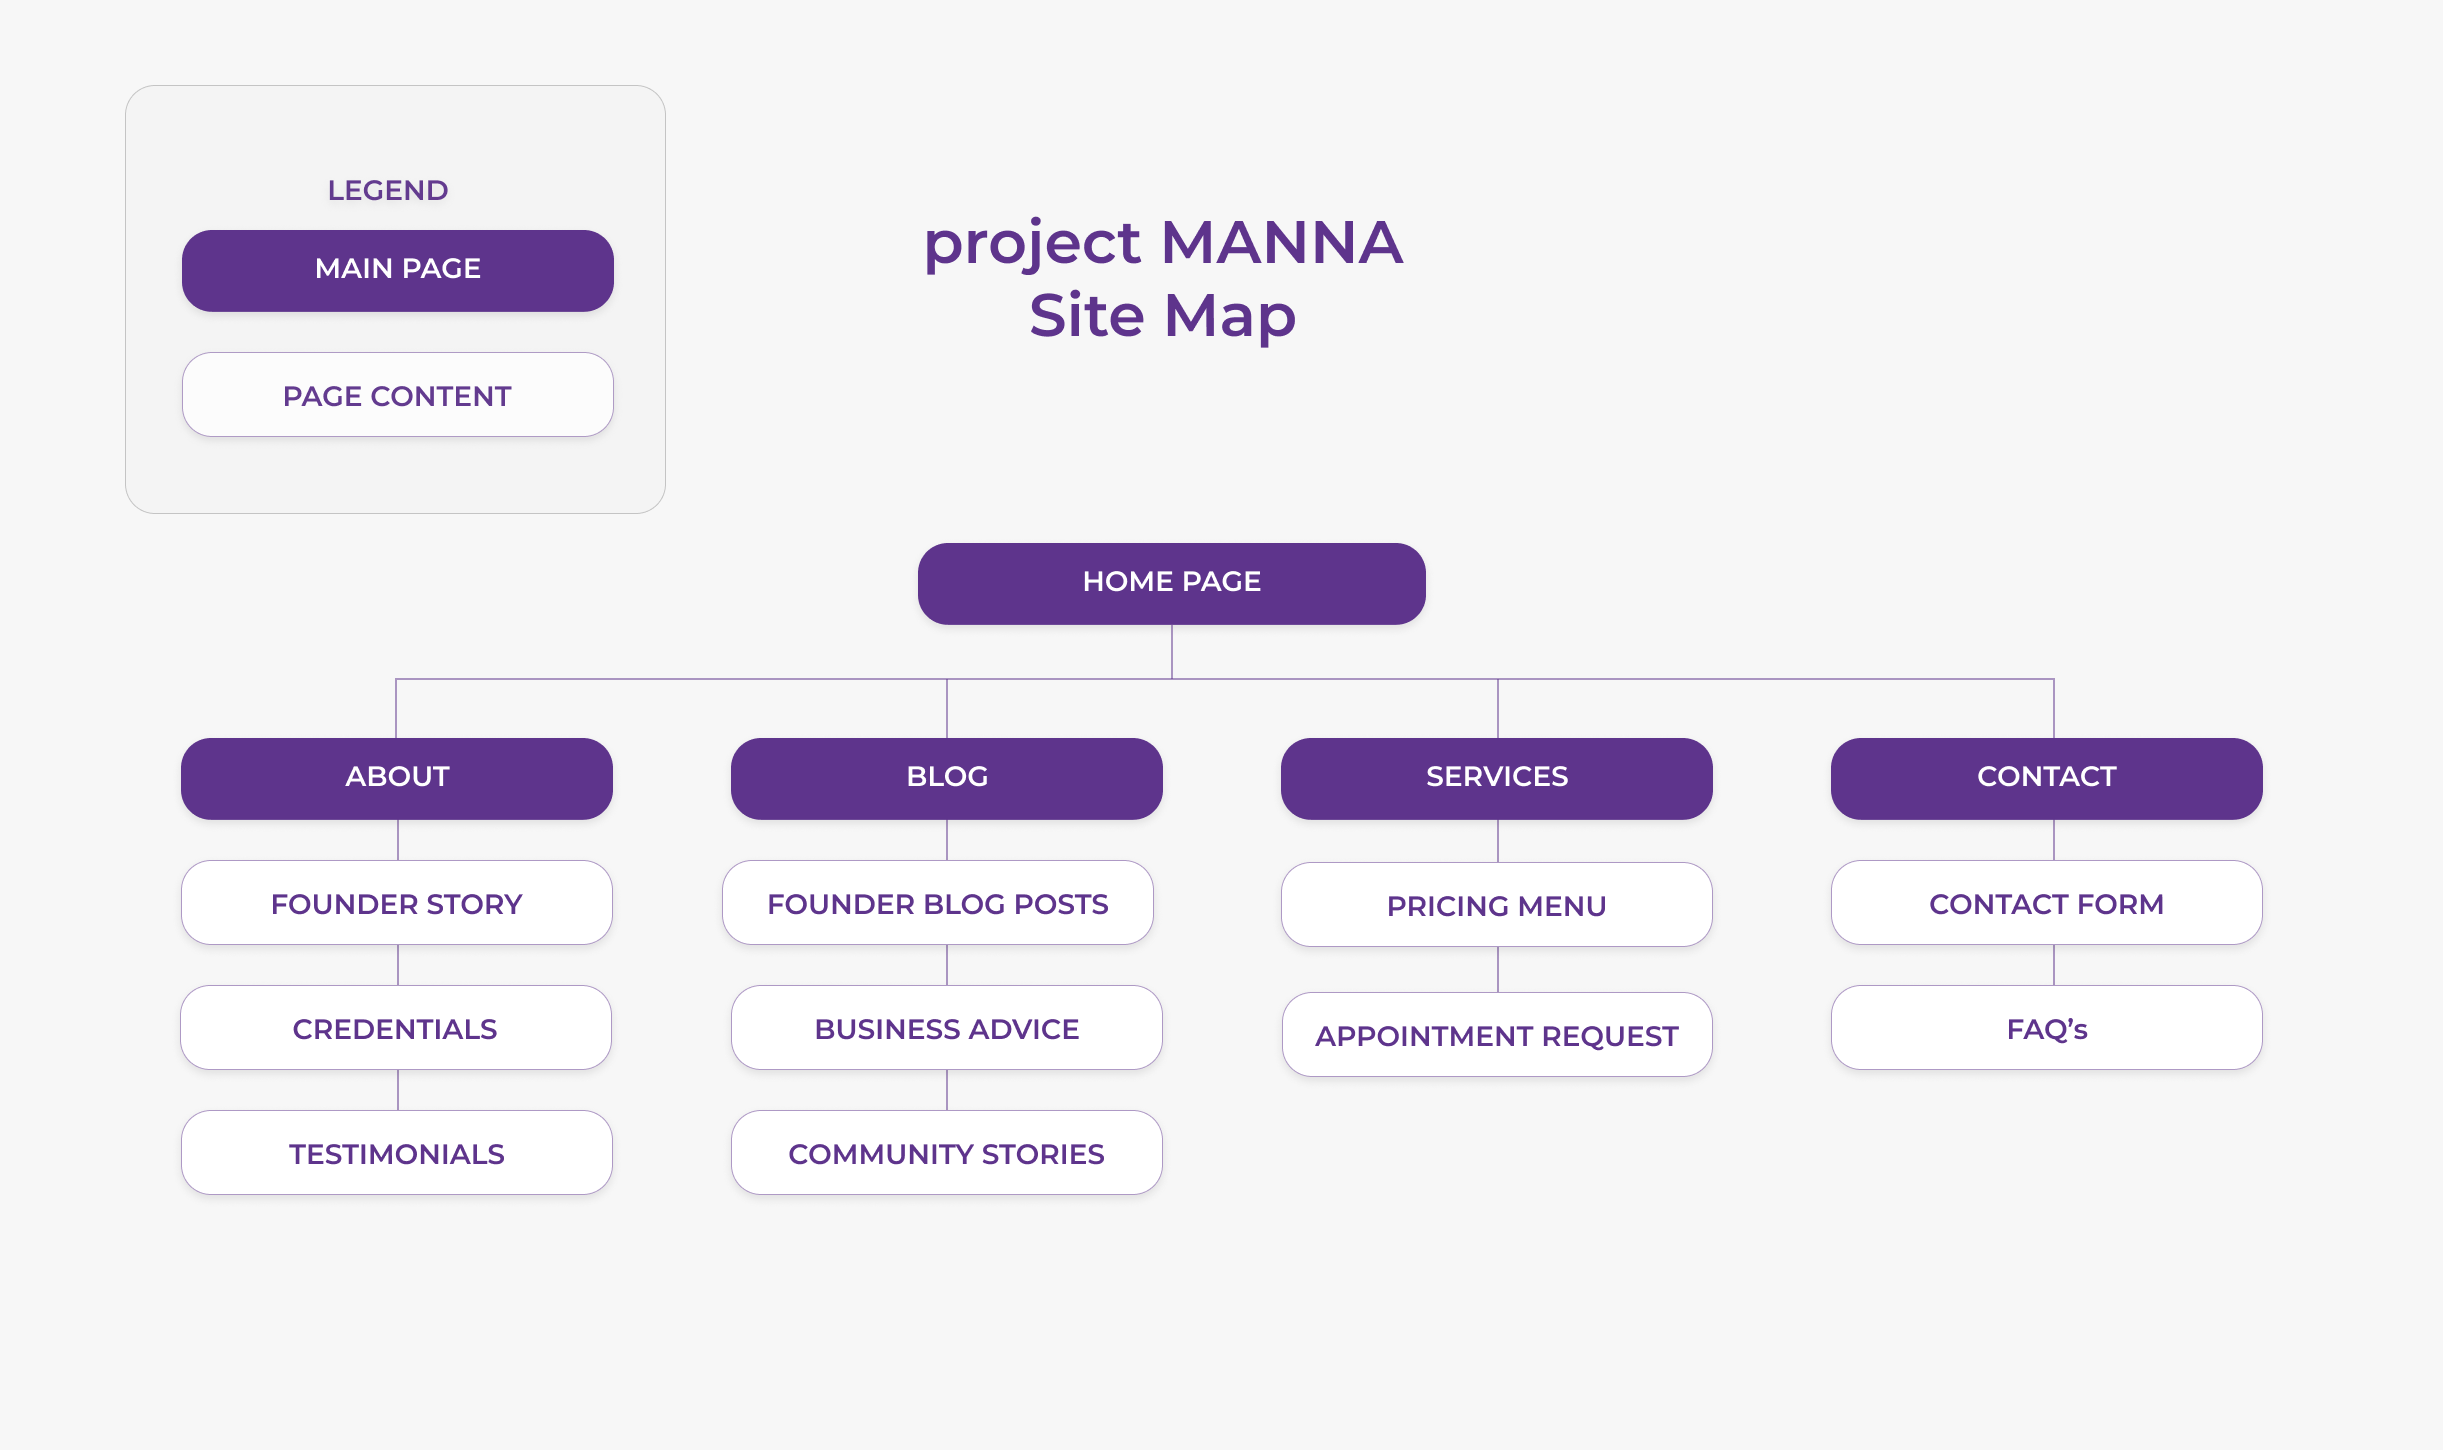 Project-Manna-Site-Map-1